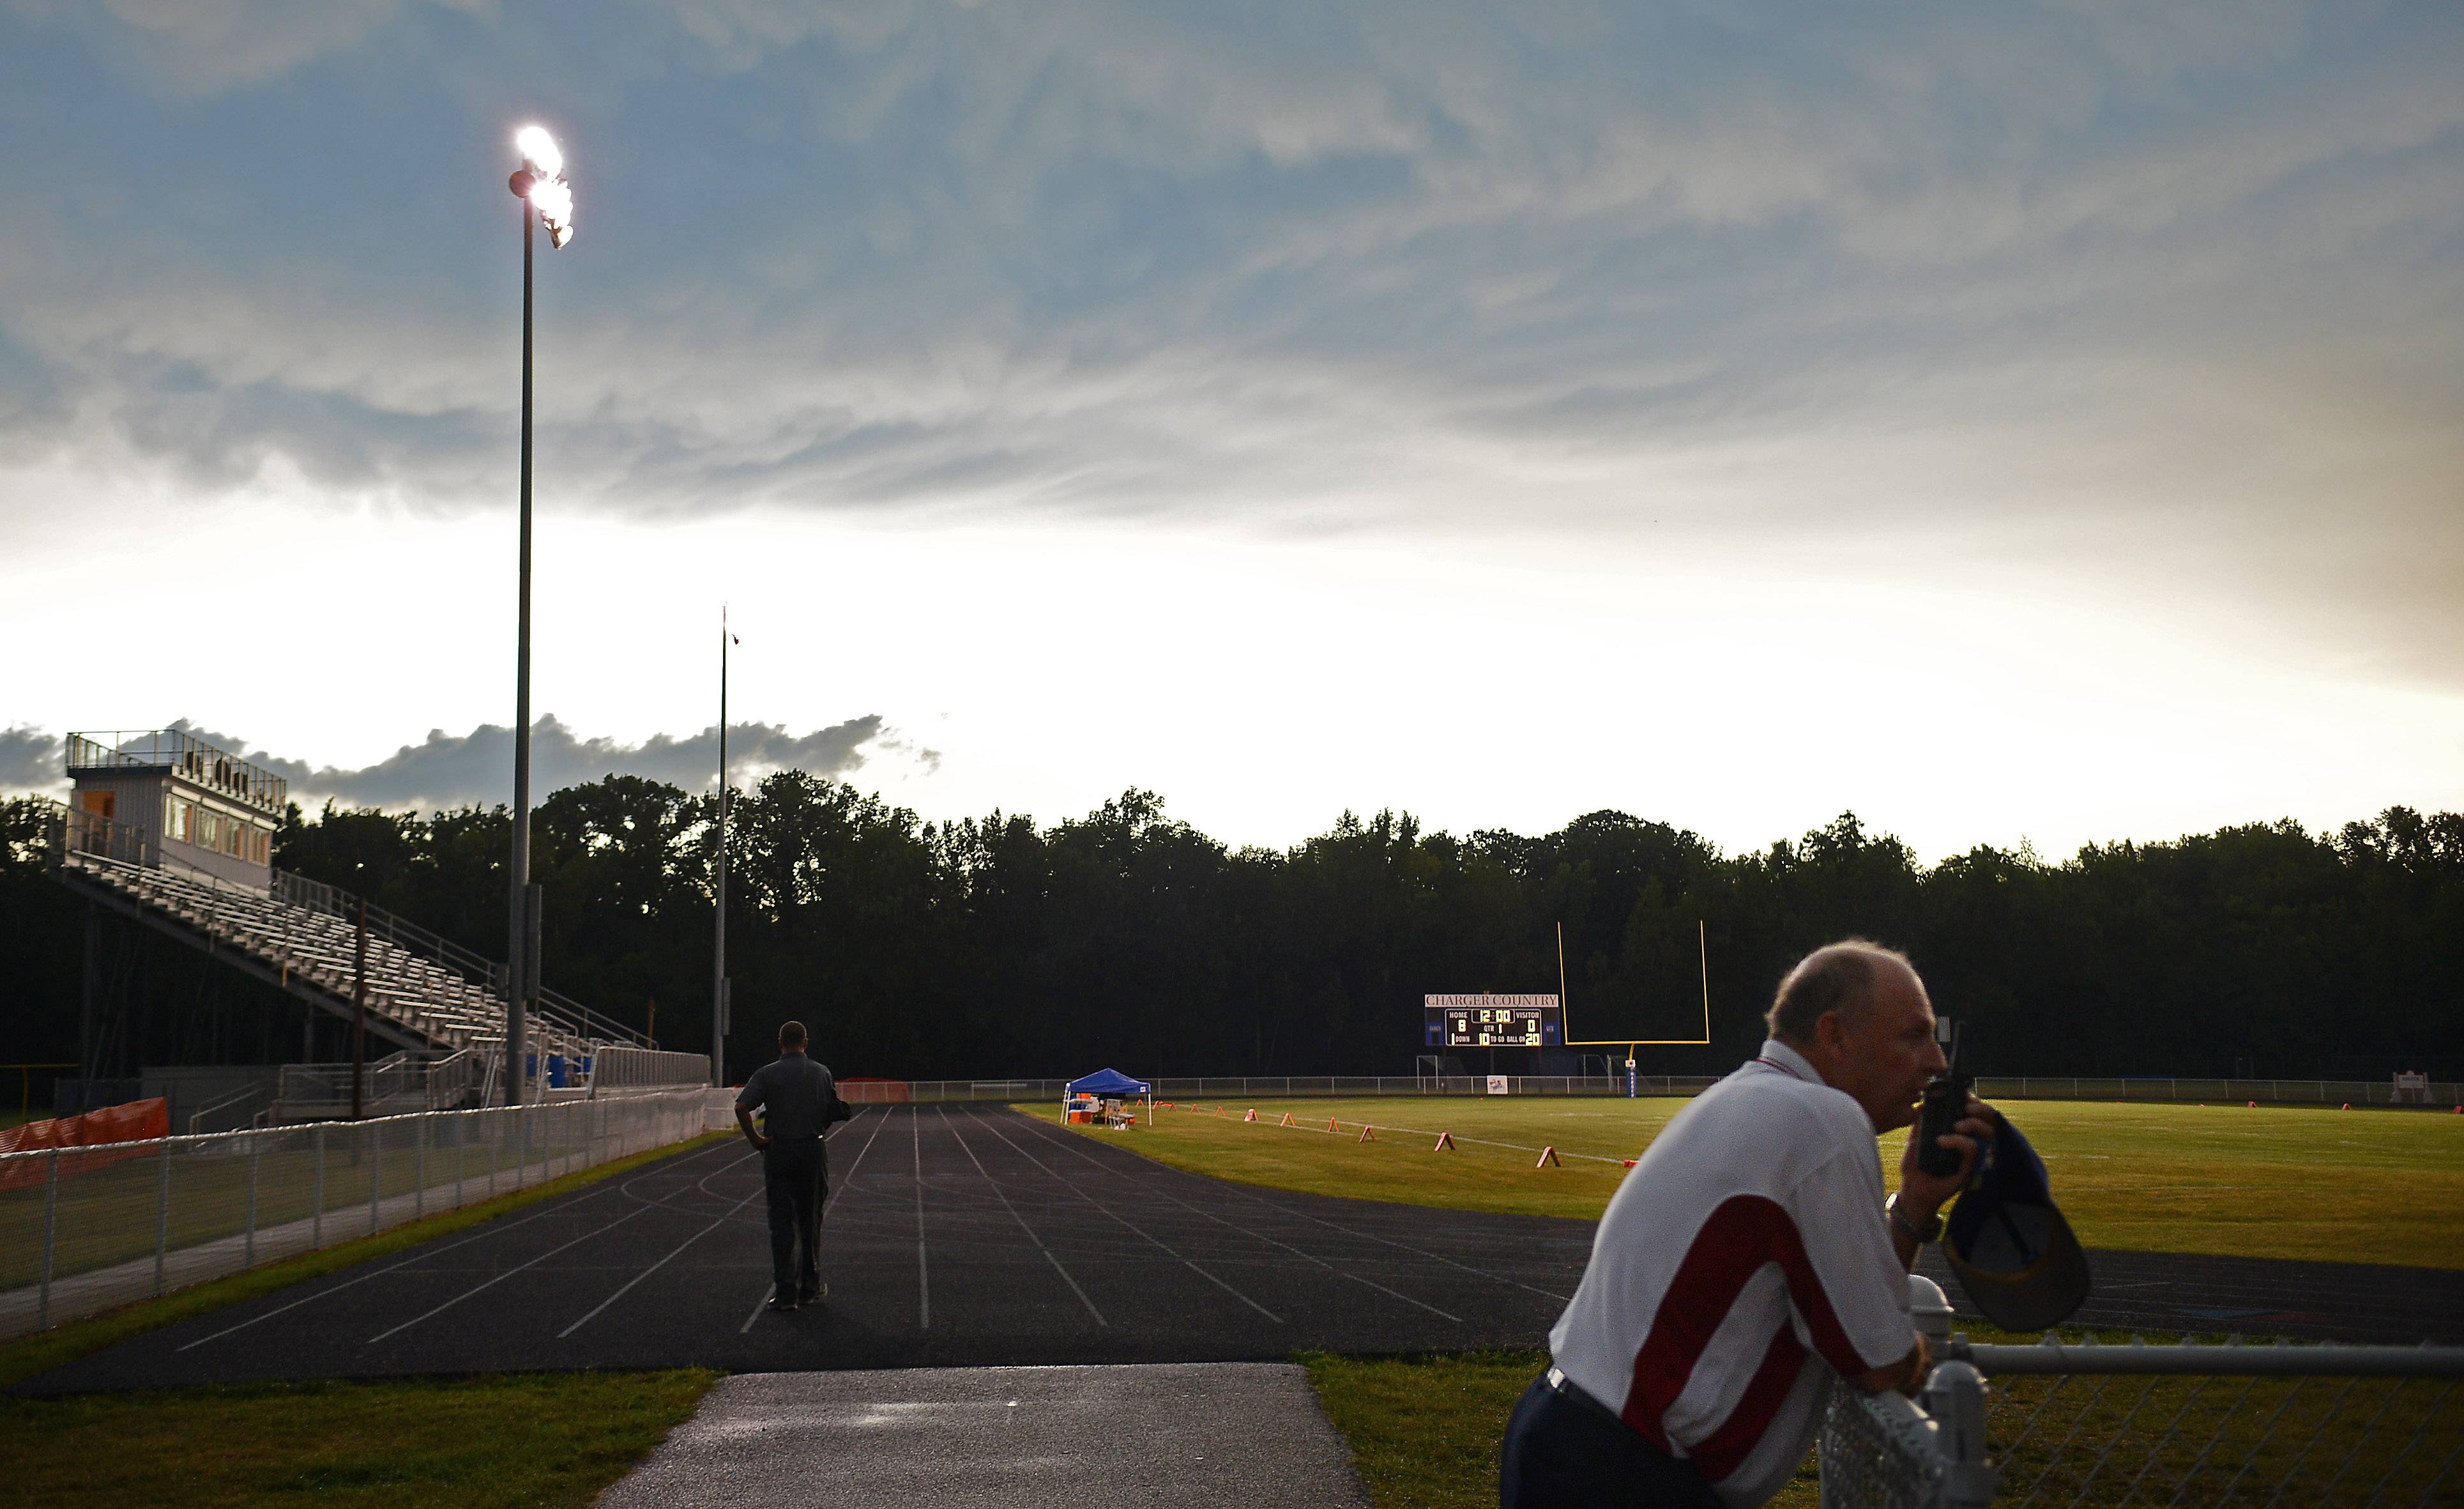 Dundee-Crown athletic director Dick Storm communicates via walkie talkie with officials as lightning delays opening night of the 2013 season.